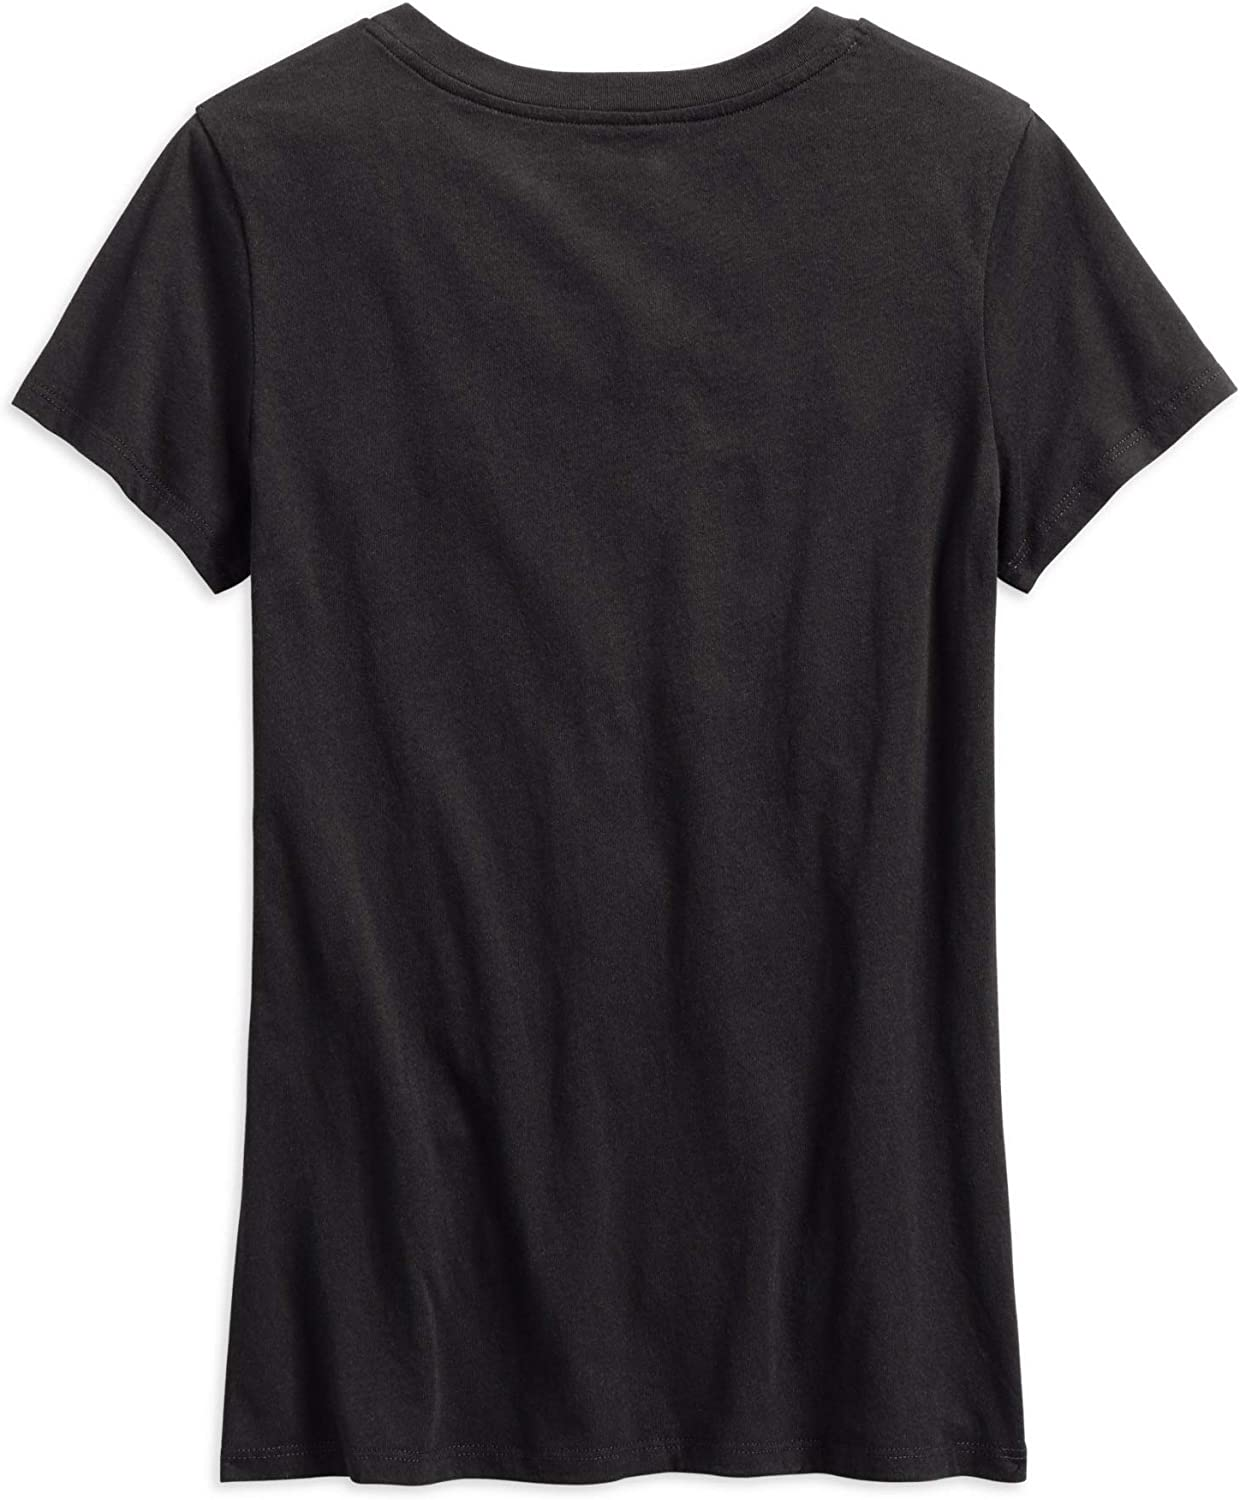 HARLEY-DAVIDSON Womens Cant Buy Happiness V-Neck Tee